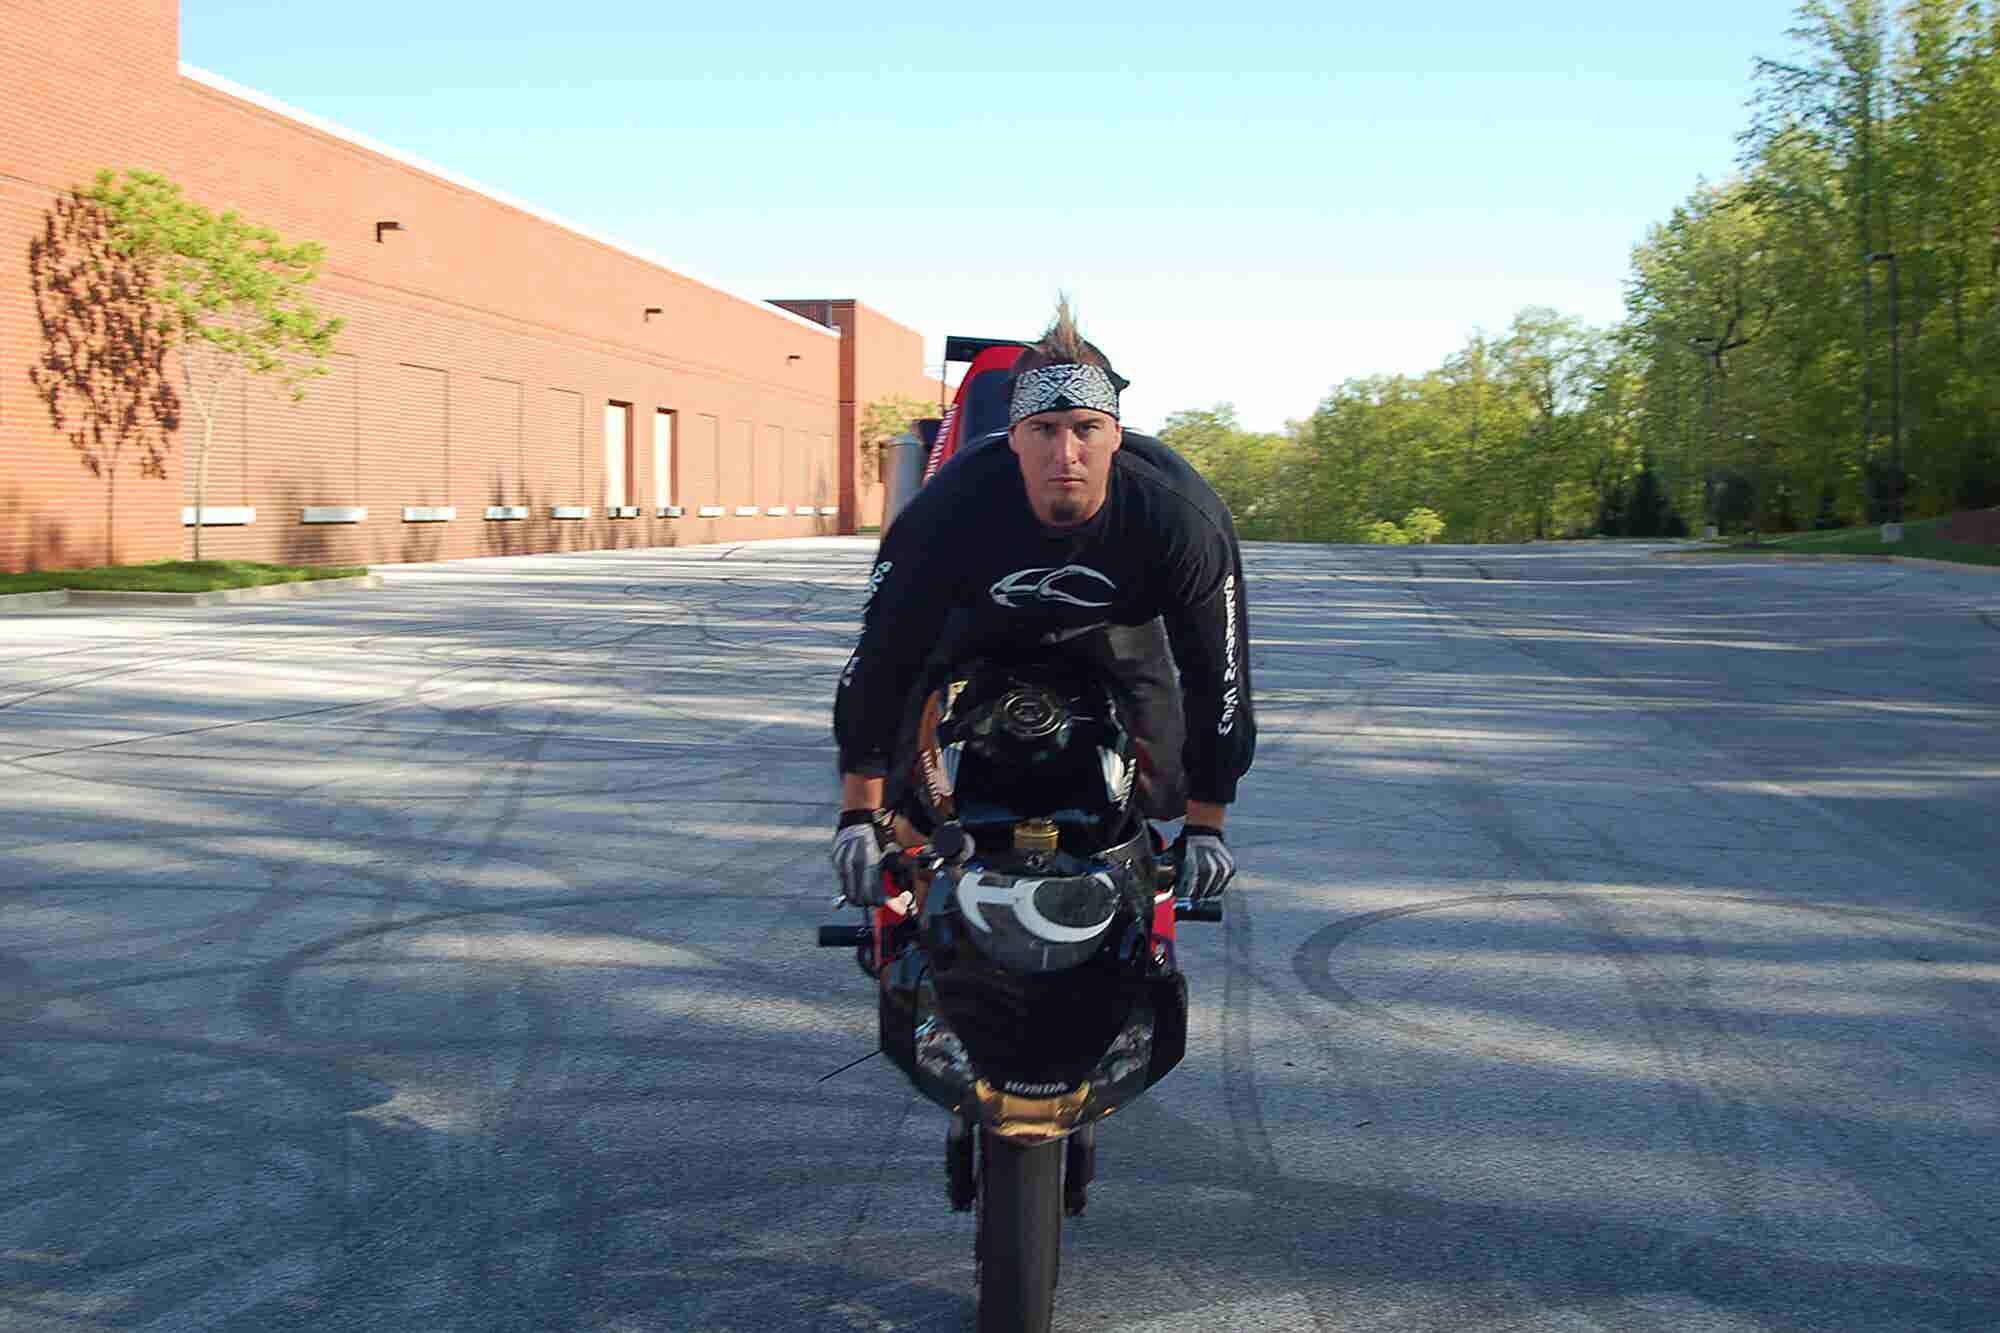 How I Took the Wild Road From Stunts to Safety and Built a Business on What I Learned